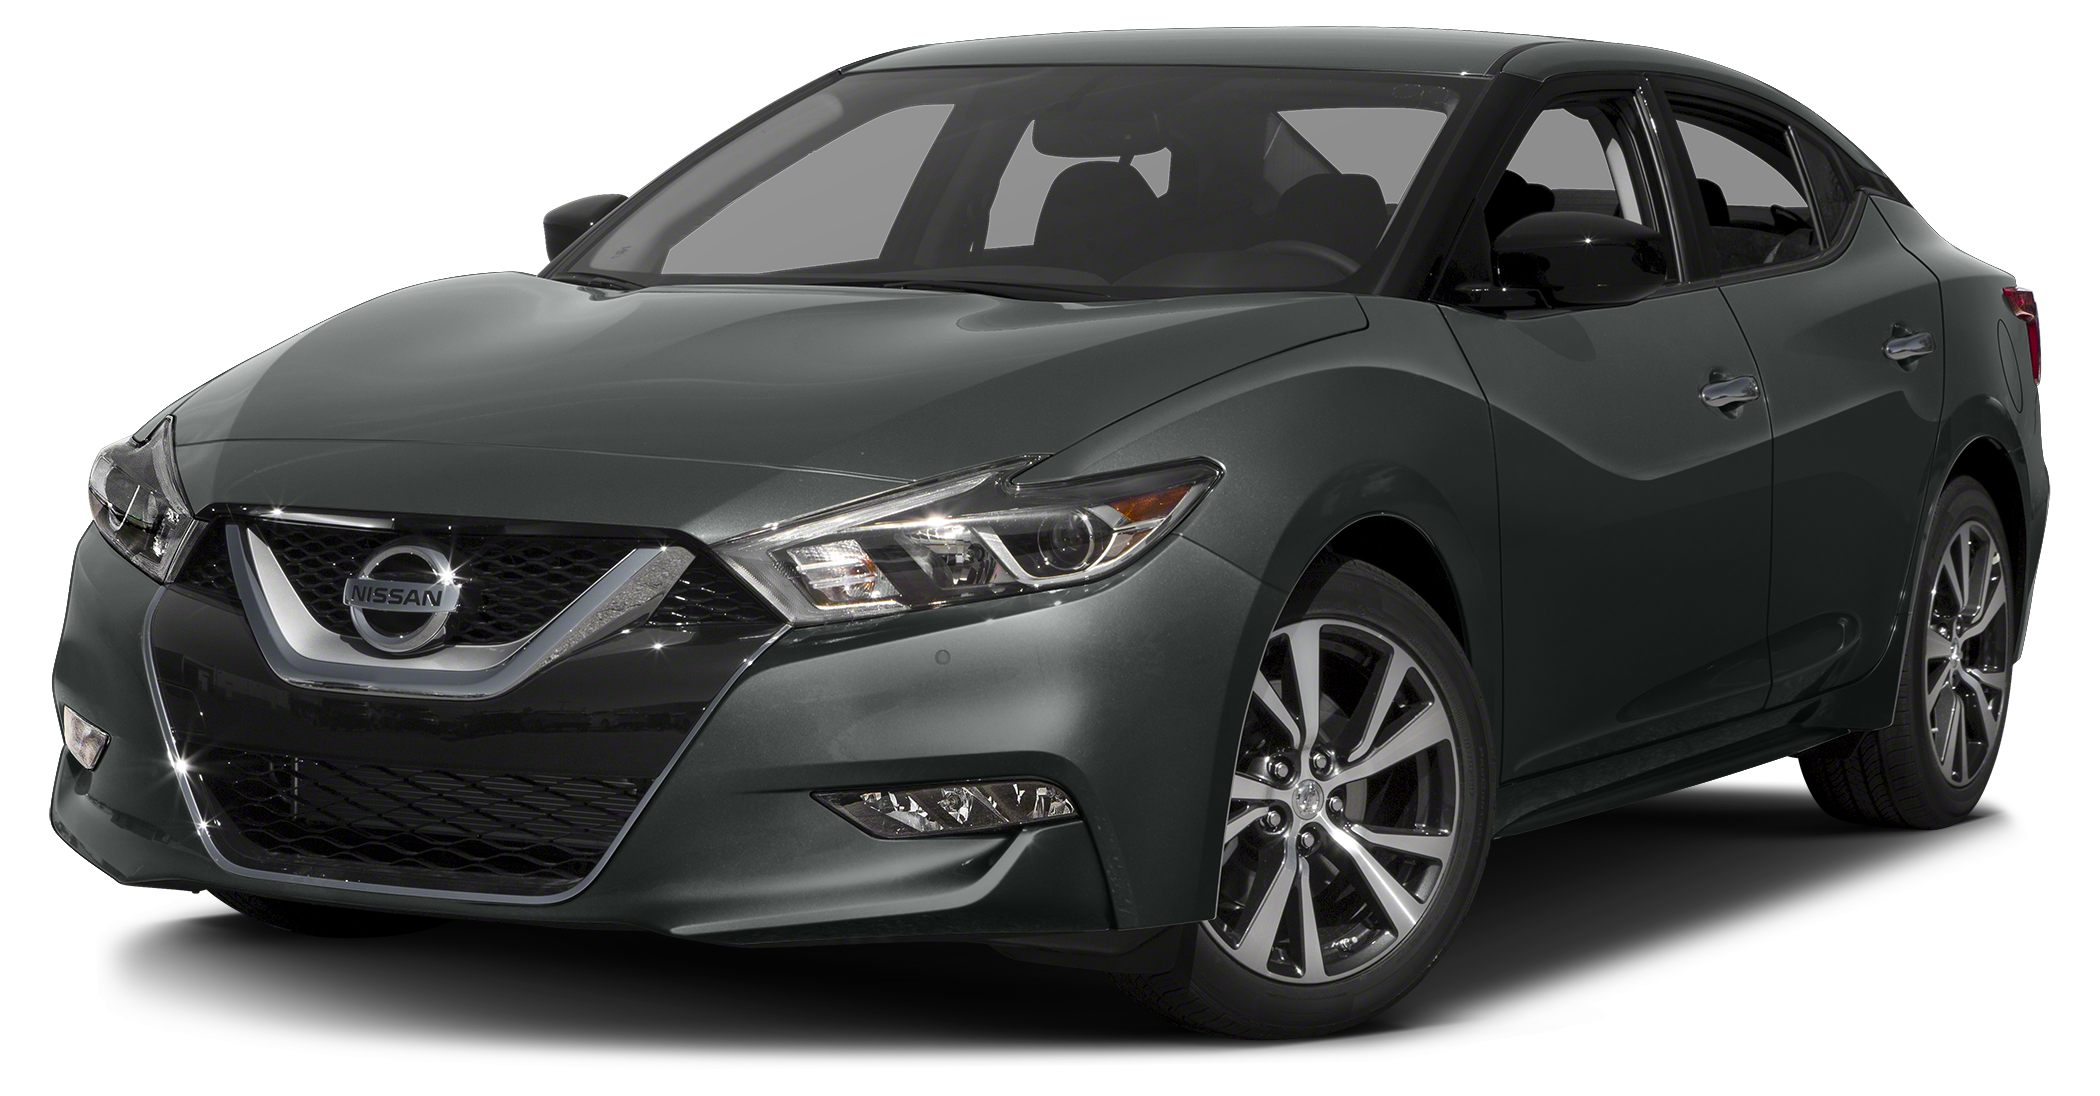 2016 Nissan Maxima 35 S Are you looking for a terrific value in a vehicle Well with this gorgeo